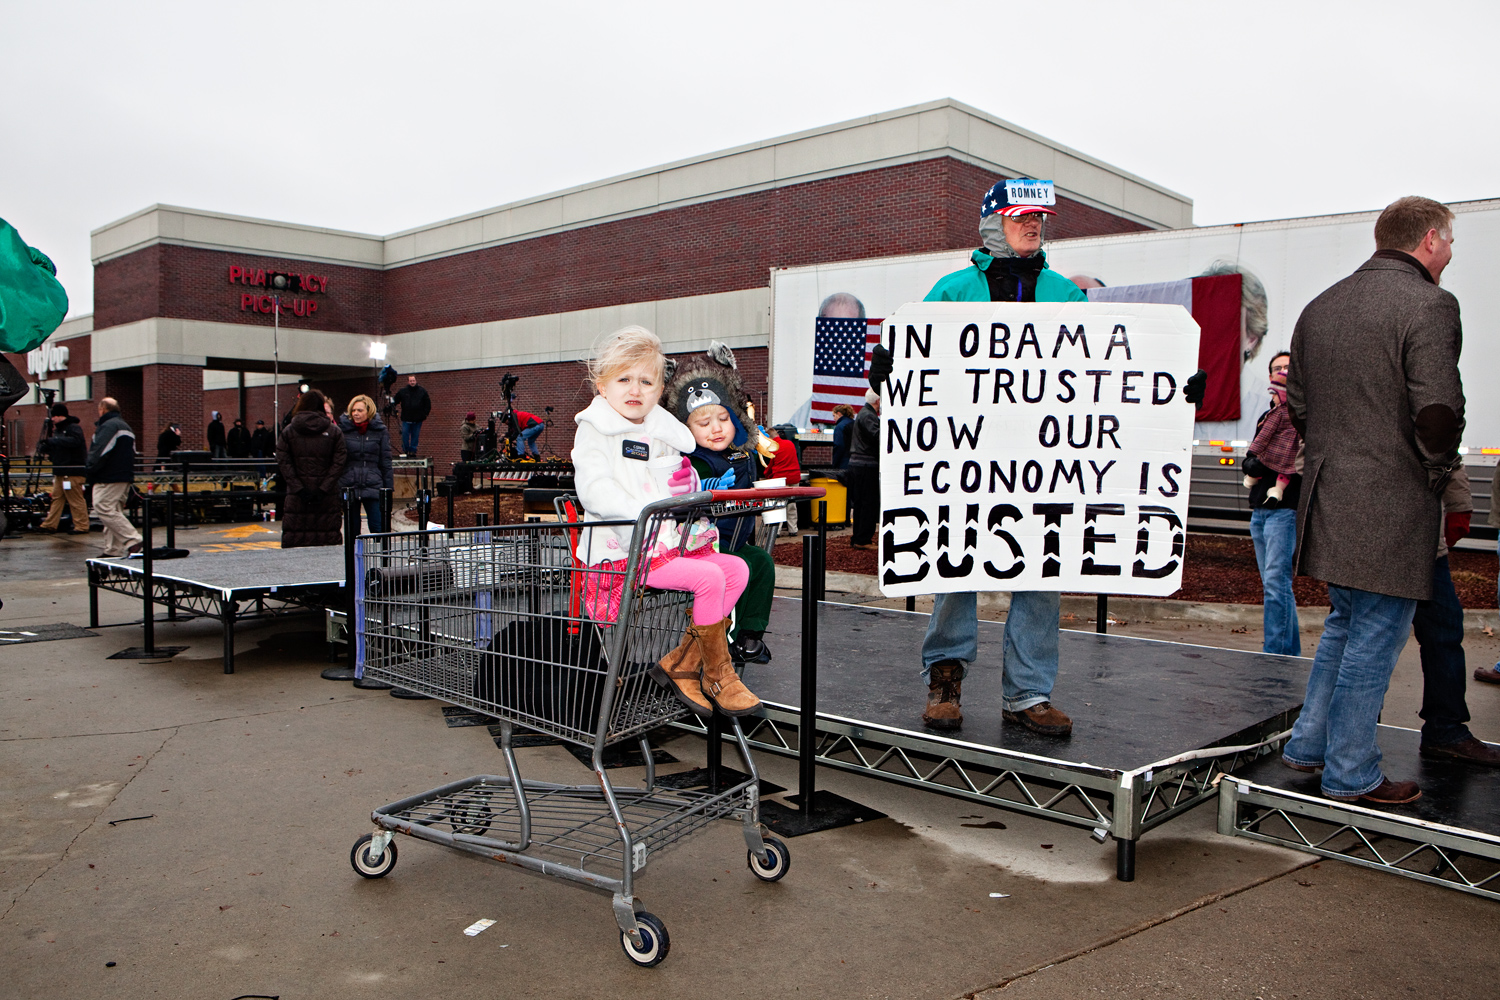 John Strong, a U.S. veteran and Mitt Romney supporter, holds an anti-Obama sign at a campaign event at the Hy-Vee in West Des Moines, Iowa on December 30, 2011.